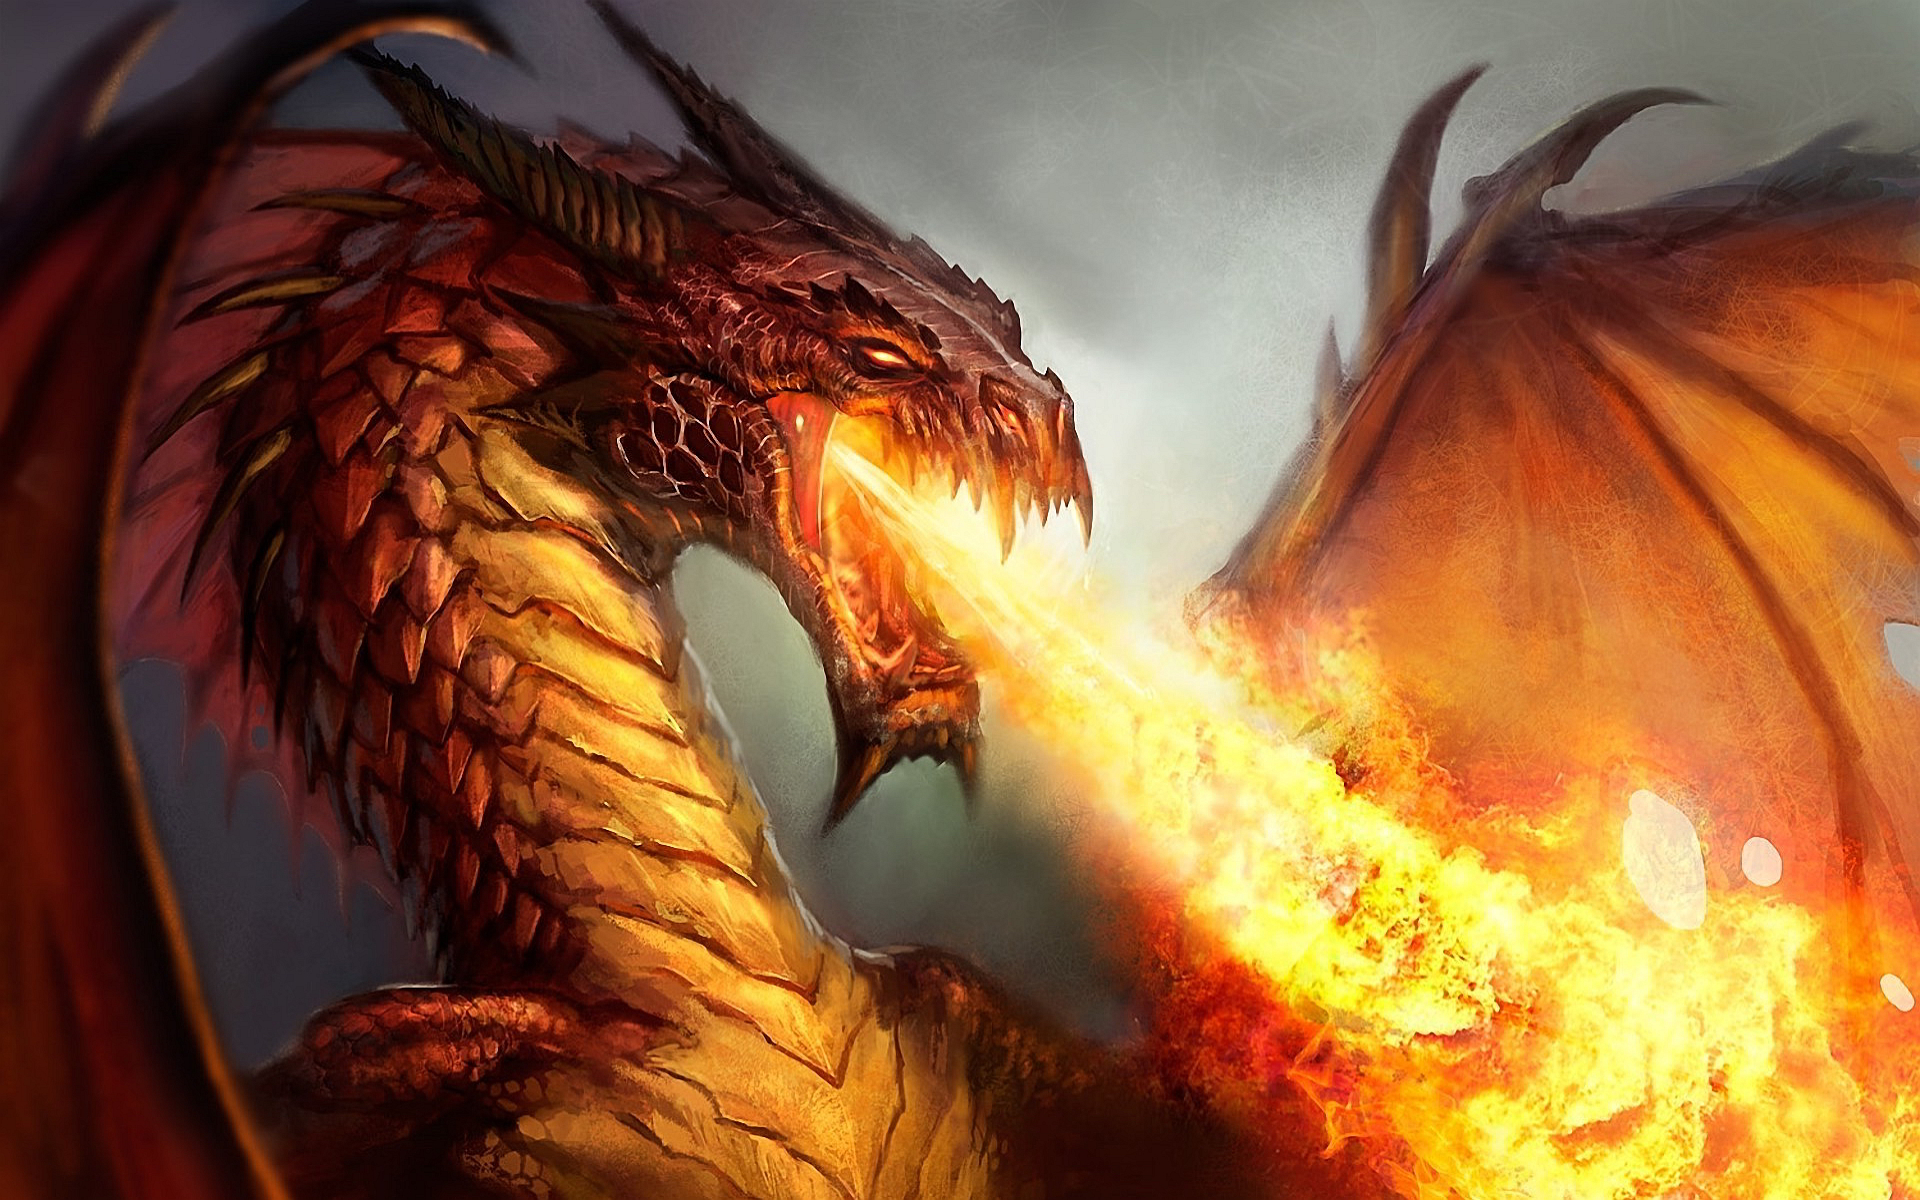 Dragon Breathing Fire 713.66 Kb